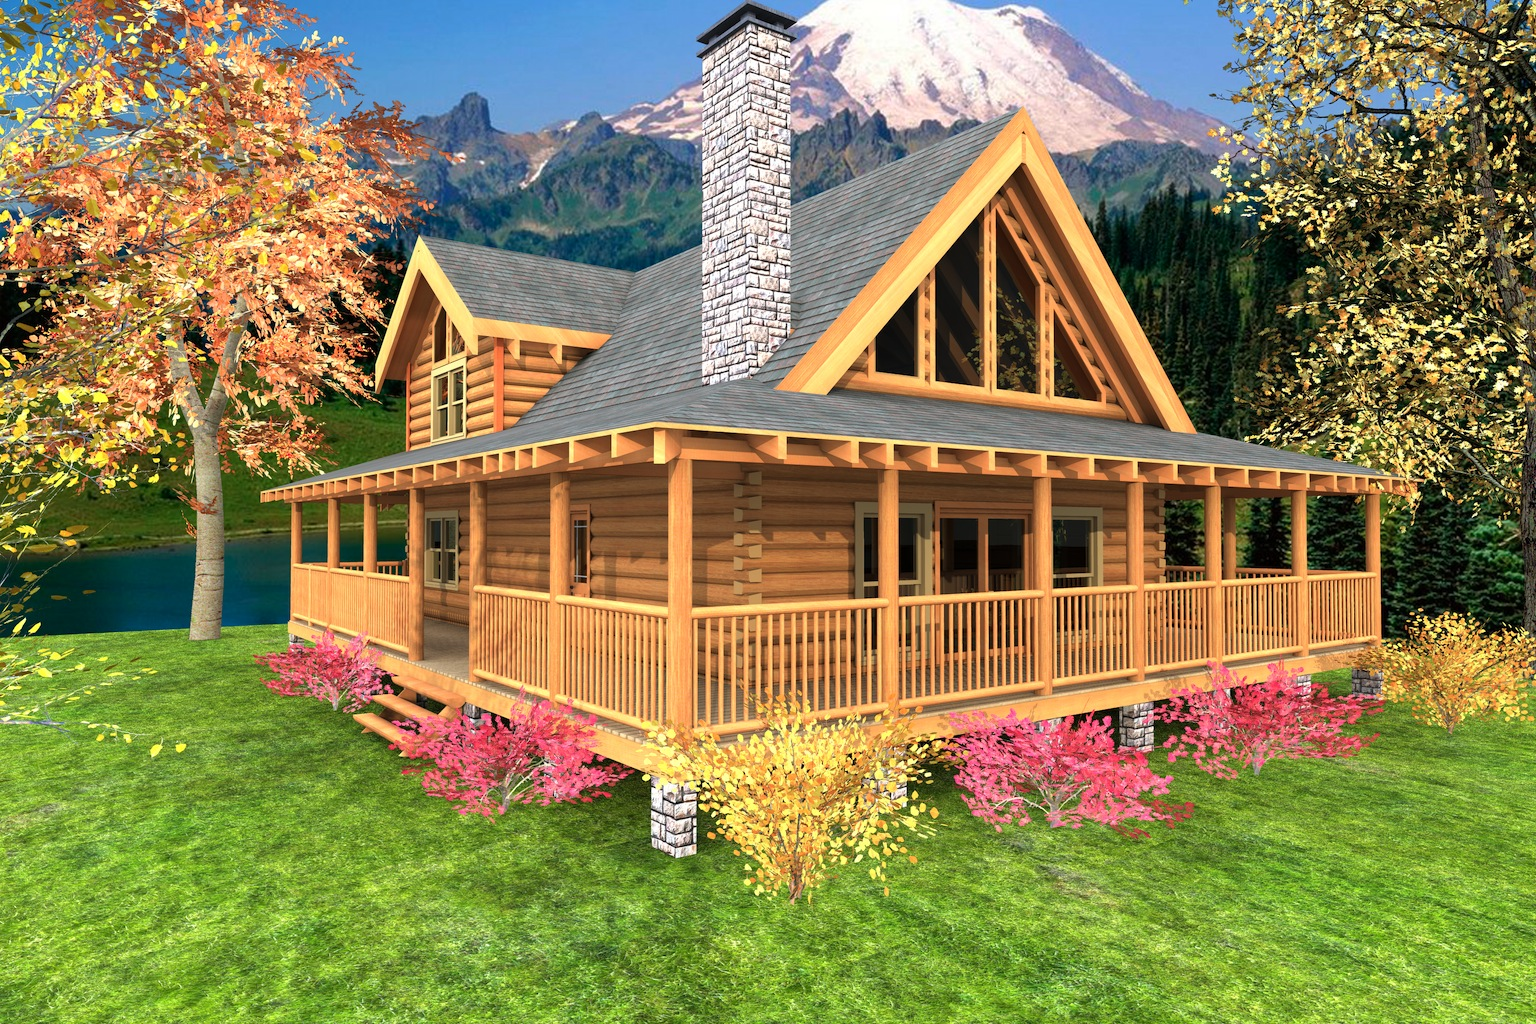 Mountain Crest Log Home - Custom Timber Log Homes